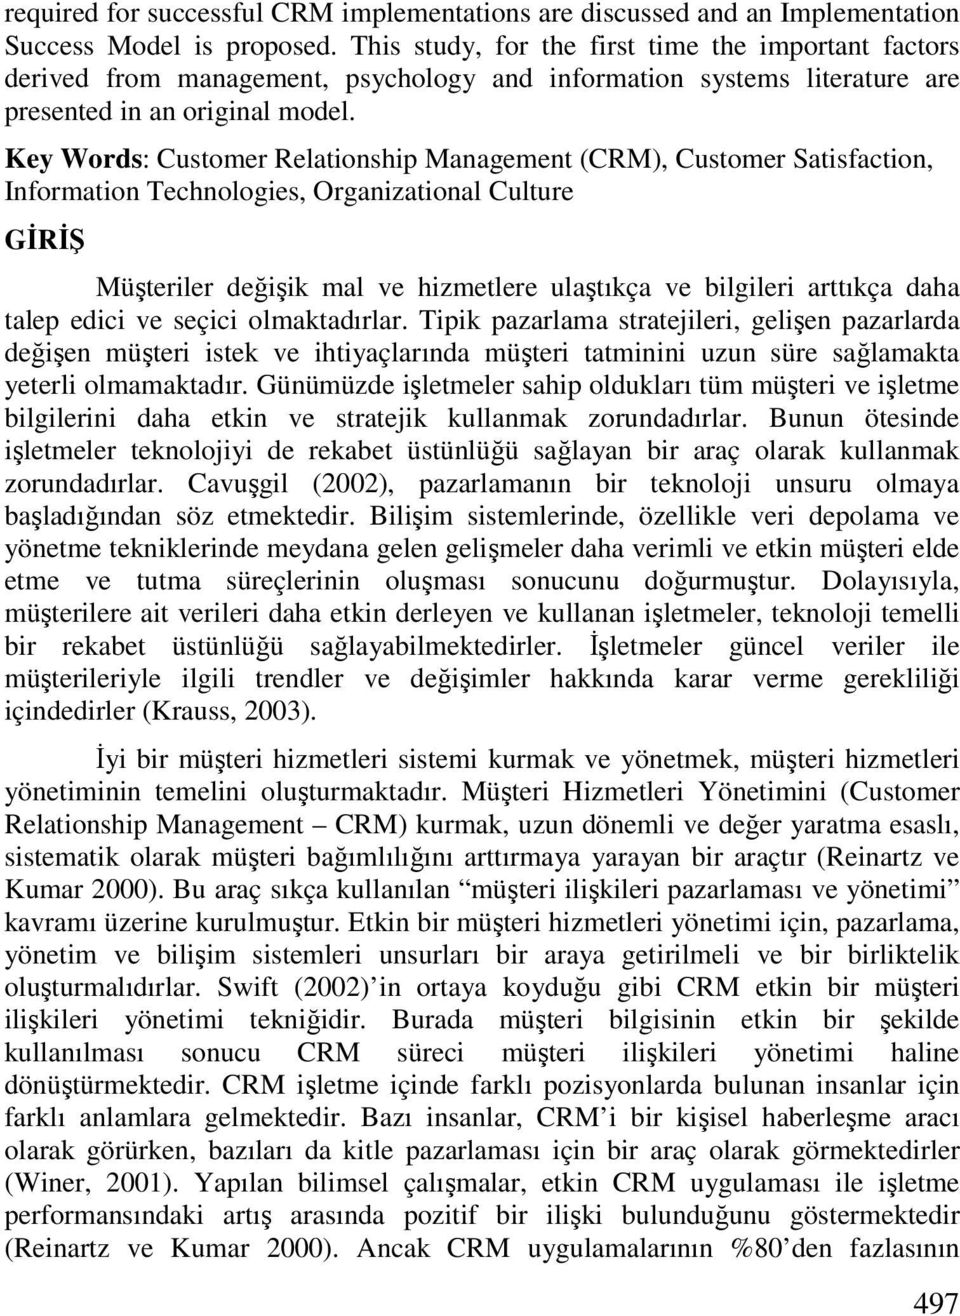 Key Words: Customer Relationship Management (CRM), Customer Satisfaction, Information Technologies, Organizational Culture GĐRĐŞ Müşteriler değişik mal ve hizmetlere ulaştıkça ve bilgileri arttıkça